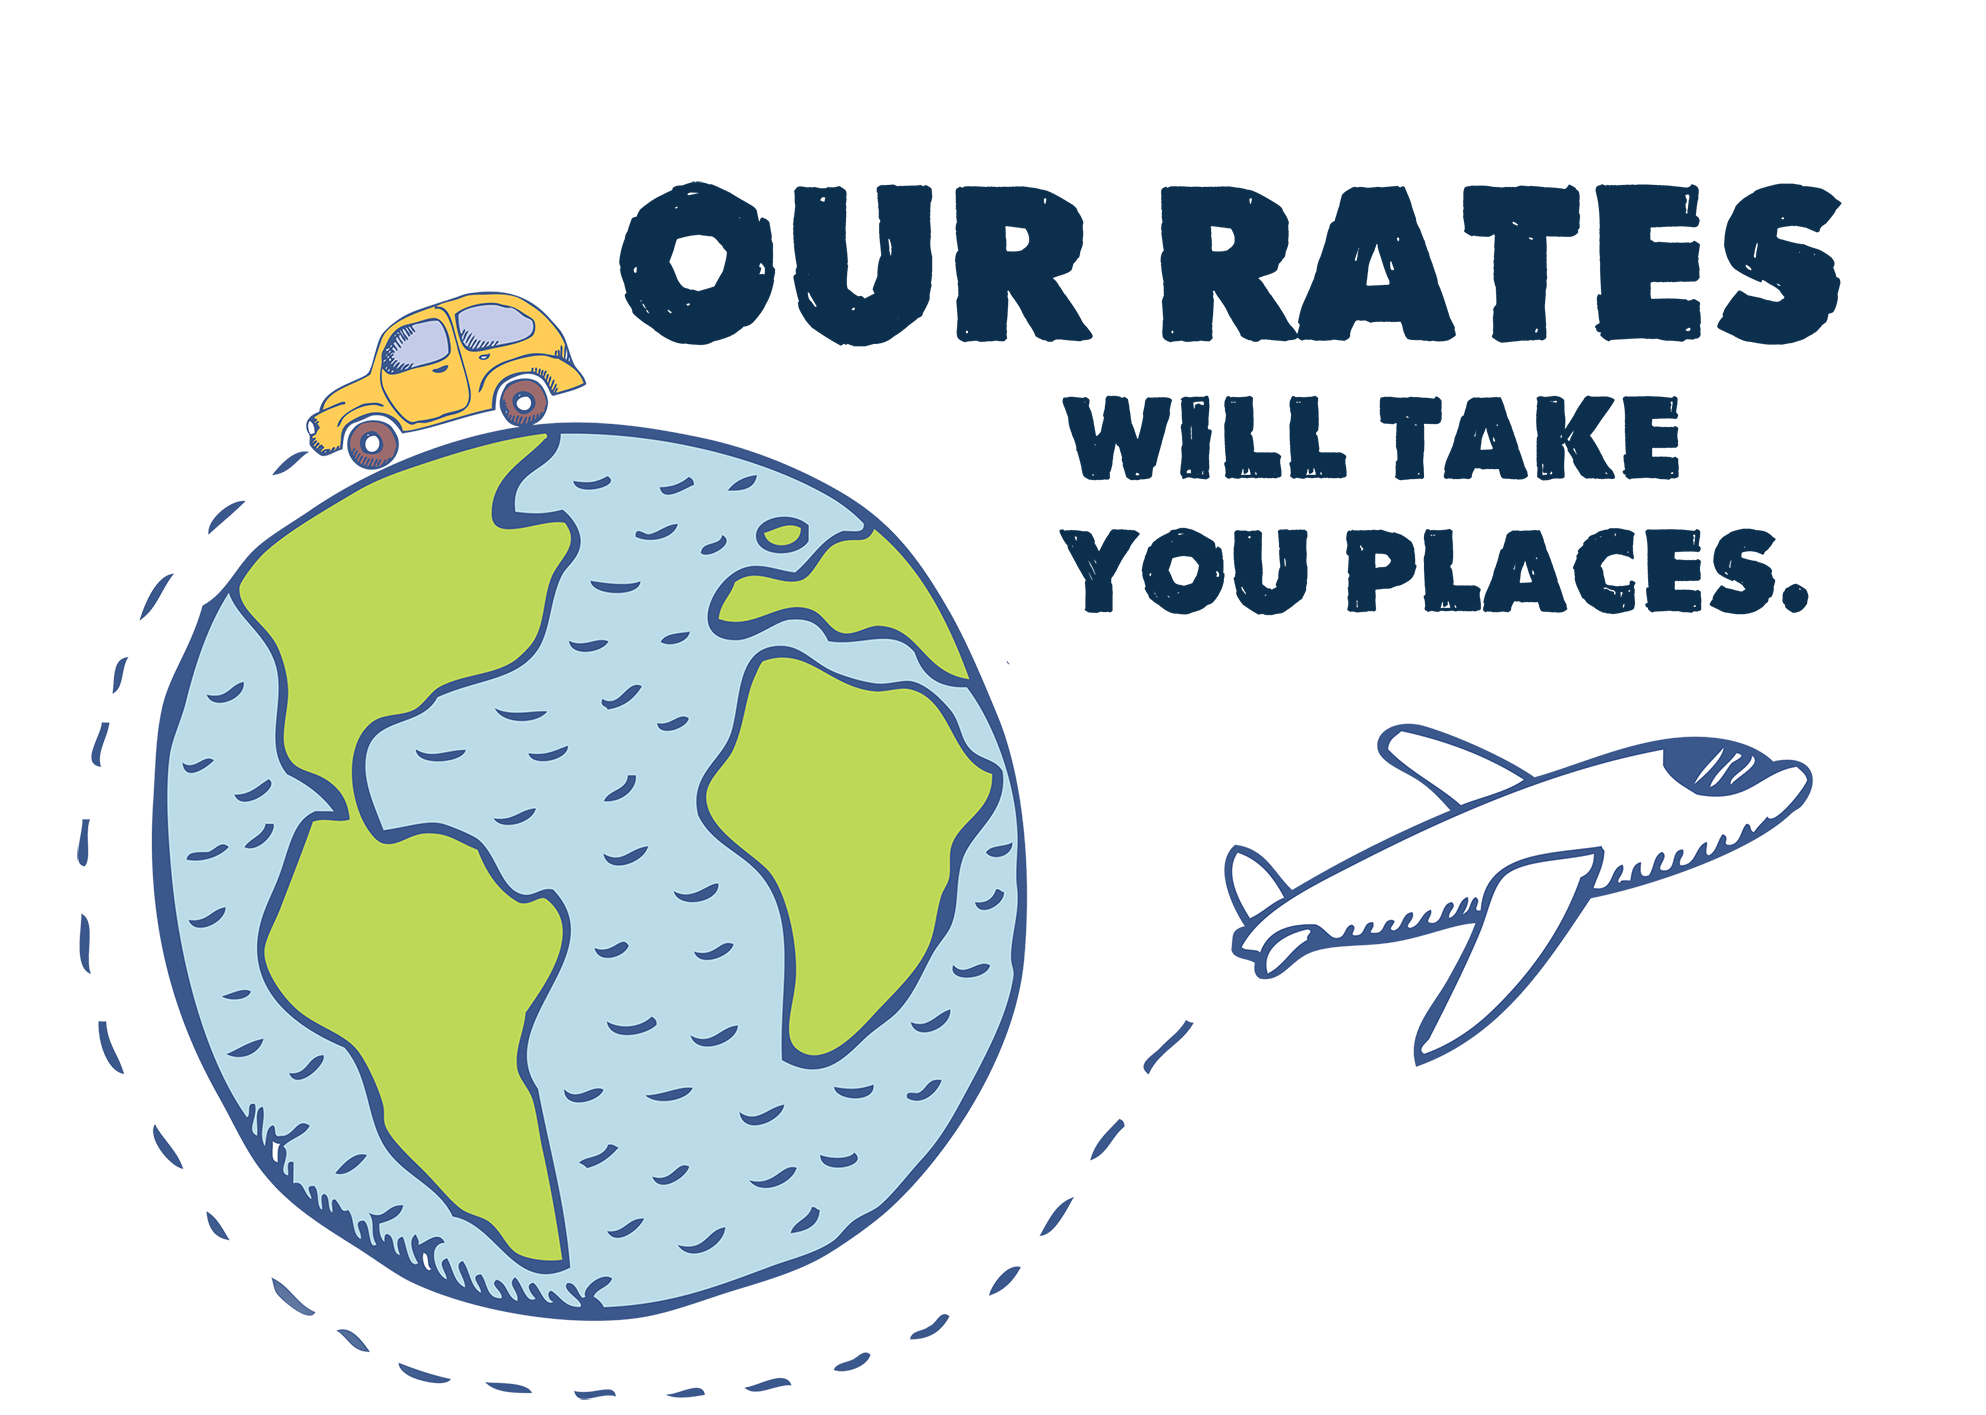 Our rates will take you places.